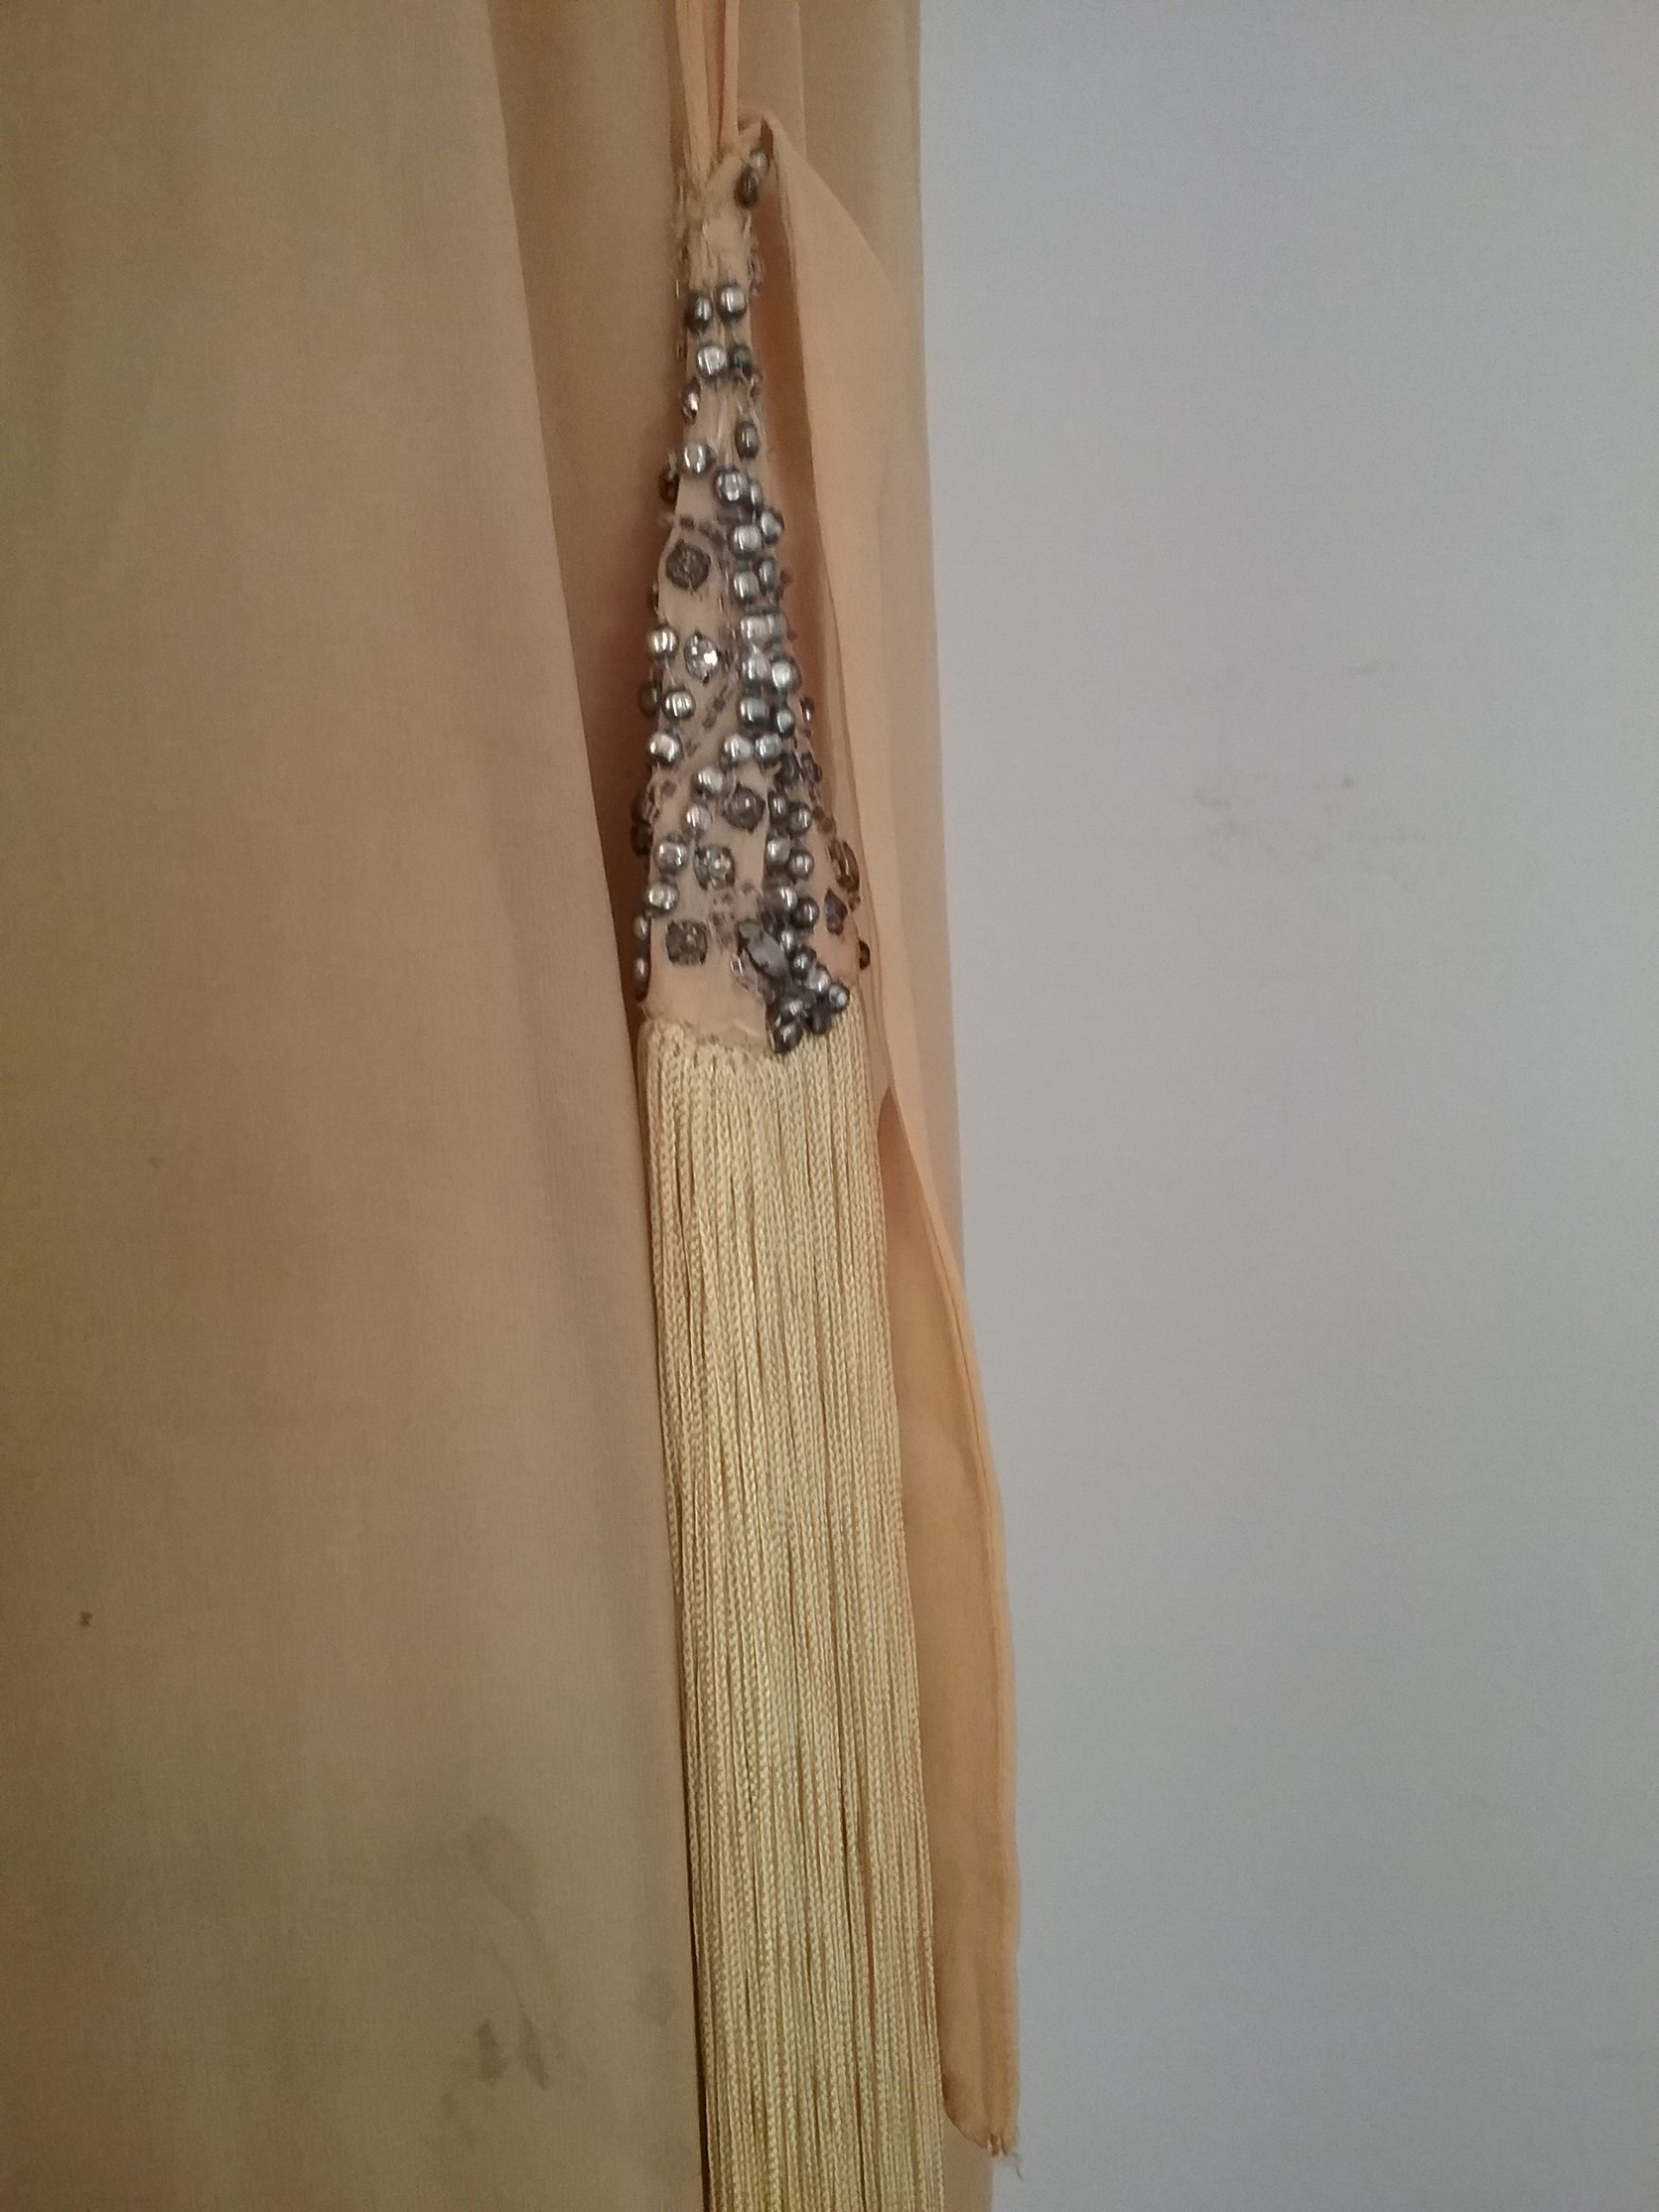 Closeup of tassel on yellow flapper-era dress with beaded drop waist. MCHS collections, #1994.45.51.